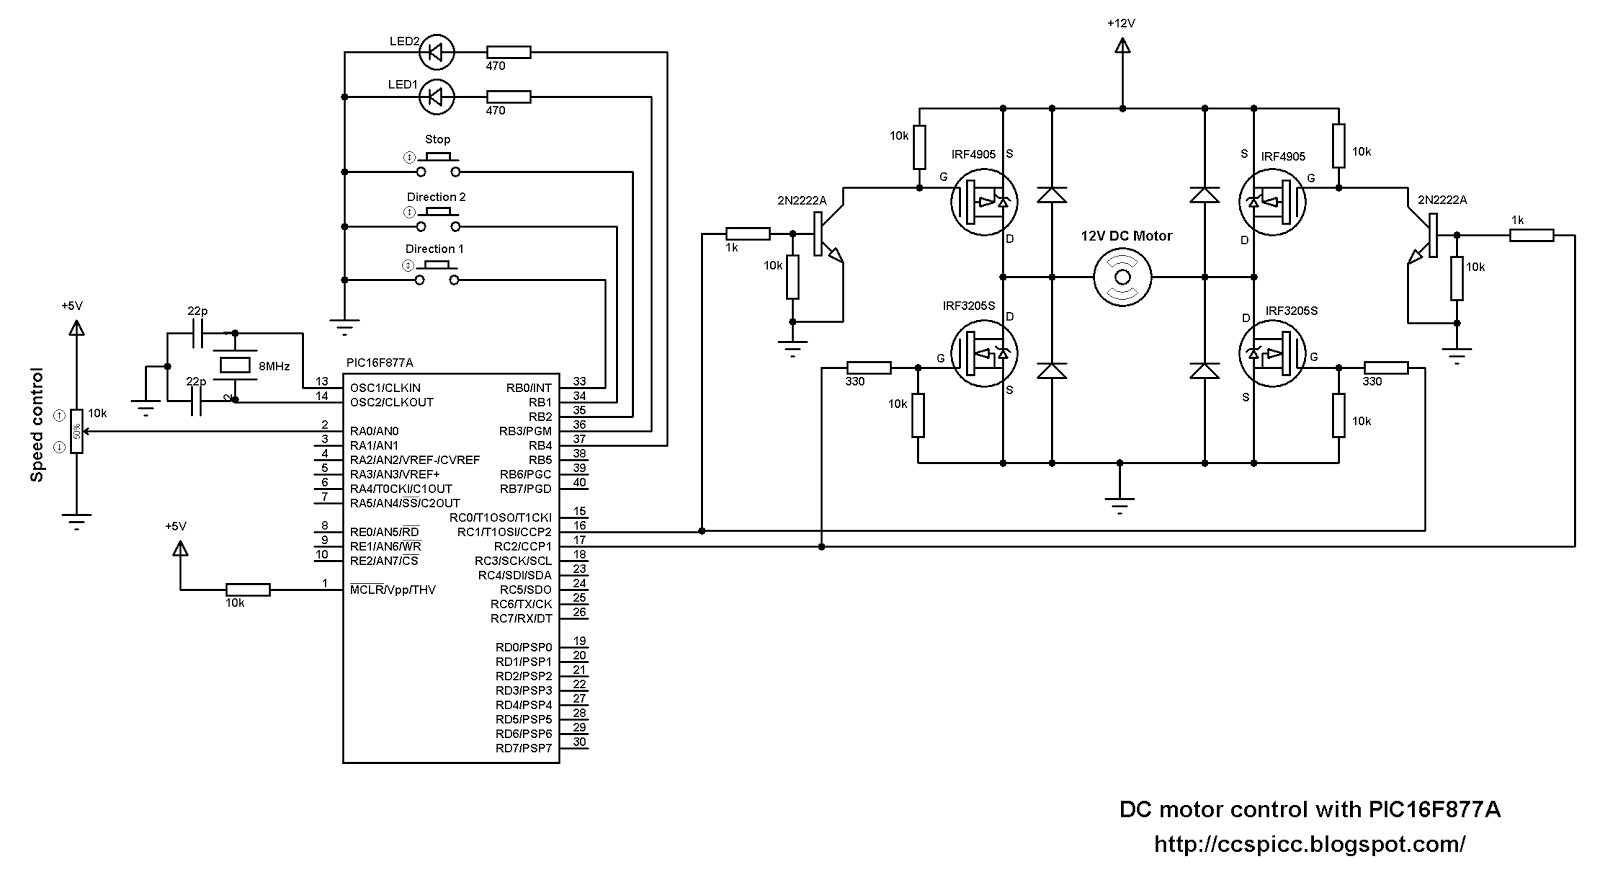 small resolution of dc motor speed and direction control with pic16f877a and h bridge brushless dc motor control circuit schematic using microchip pic16f877